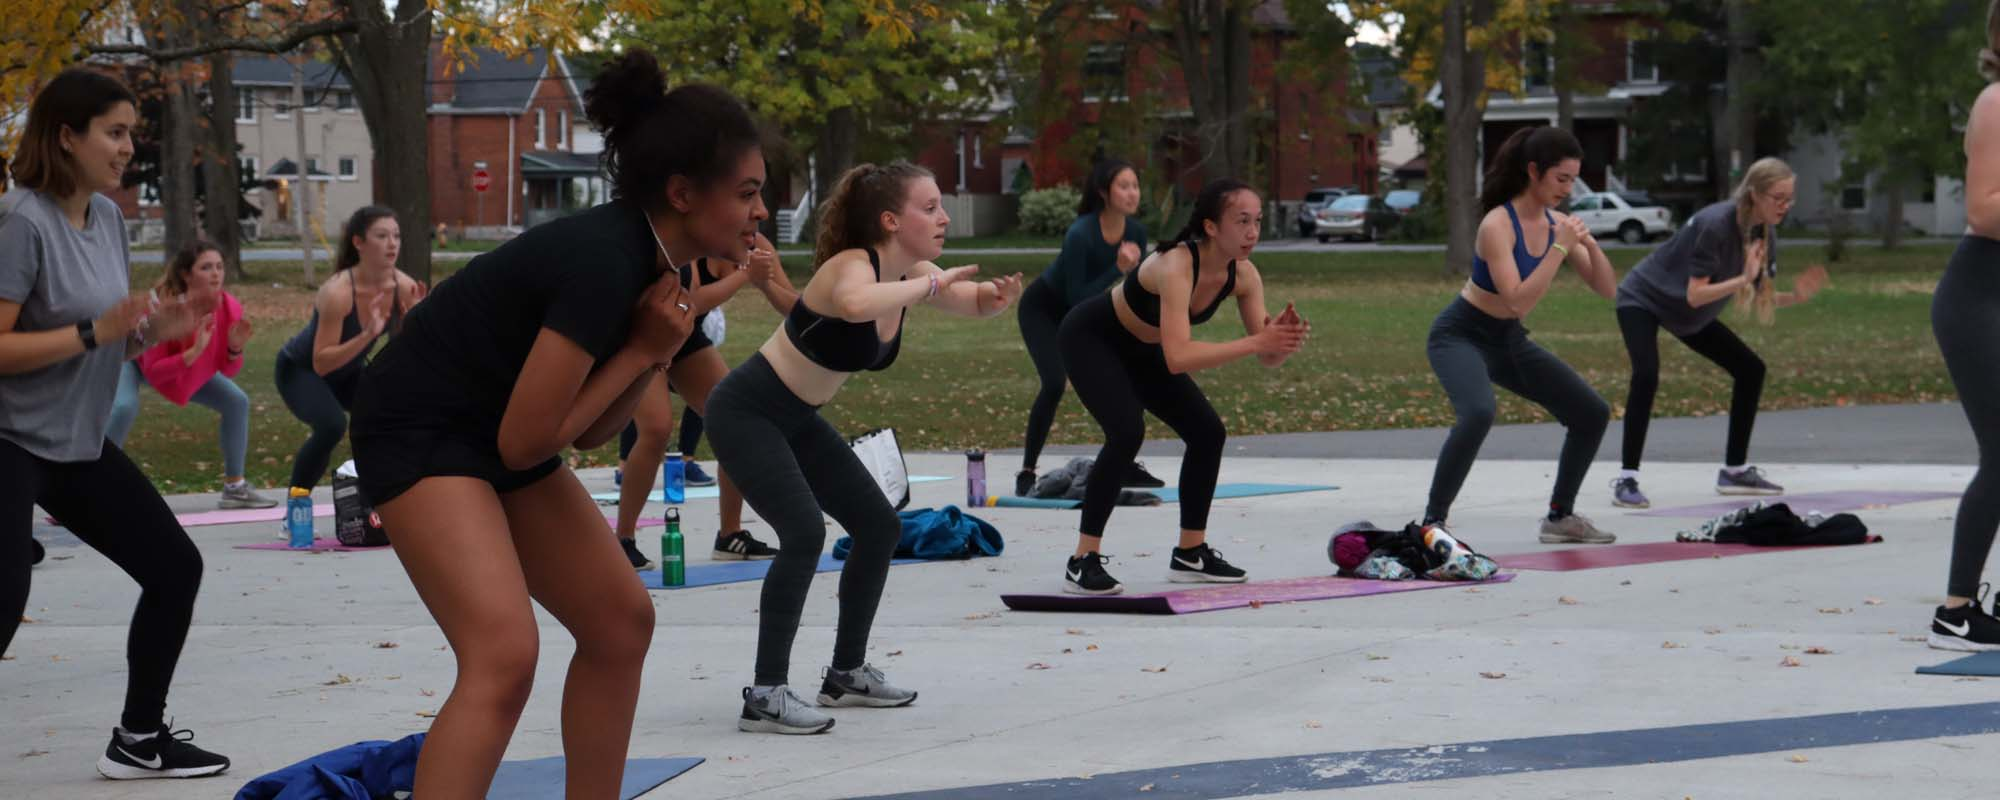 A group of women workout in public park in Kingston, Ontario.